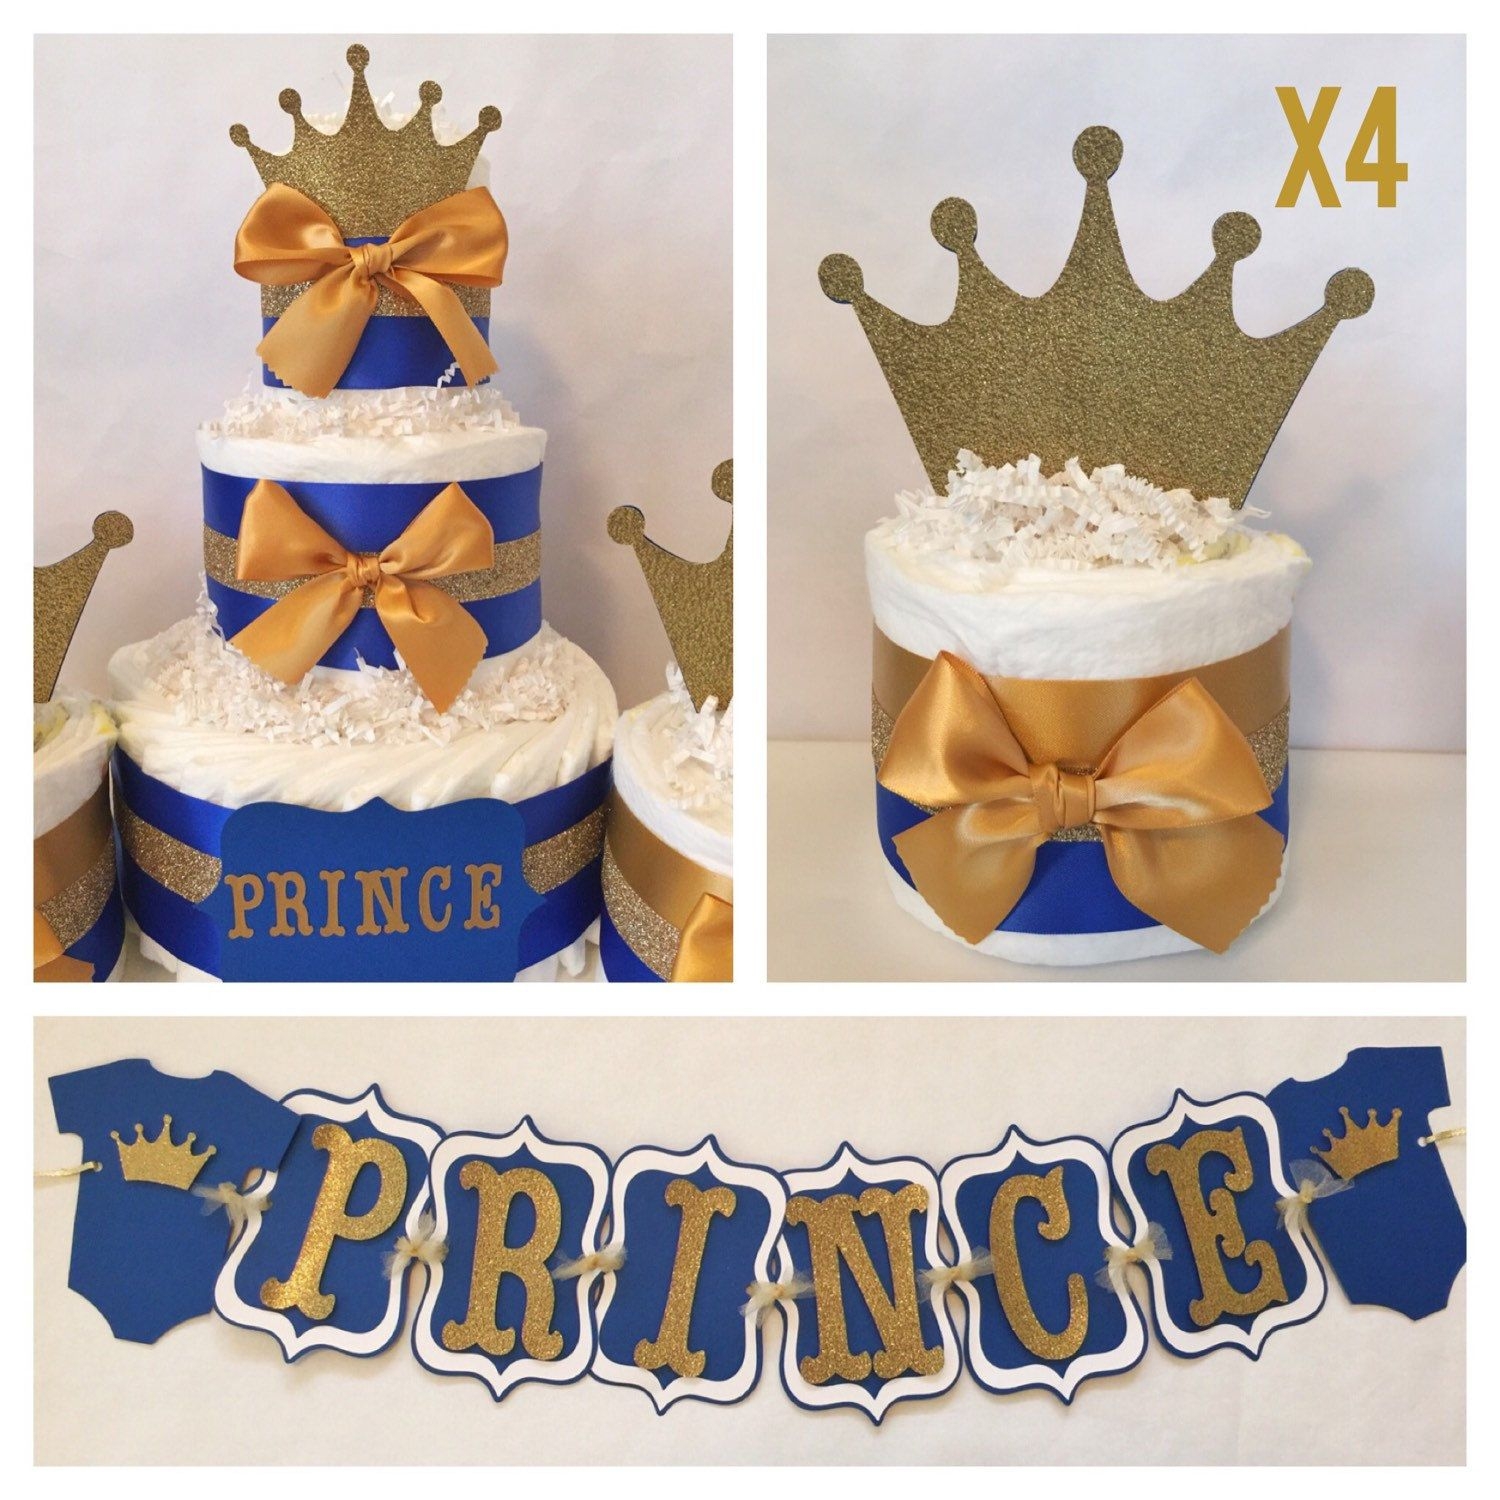 Superior Prince Baby Shower Party Package In Royal Blue And Gold, Prince Theme Baby  Shower Decorations, Centerpiece